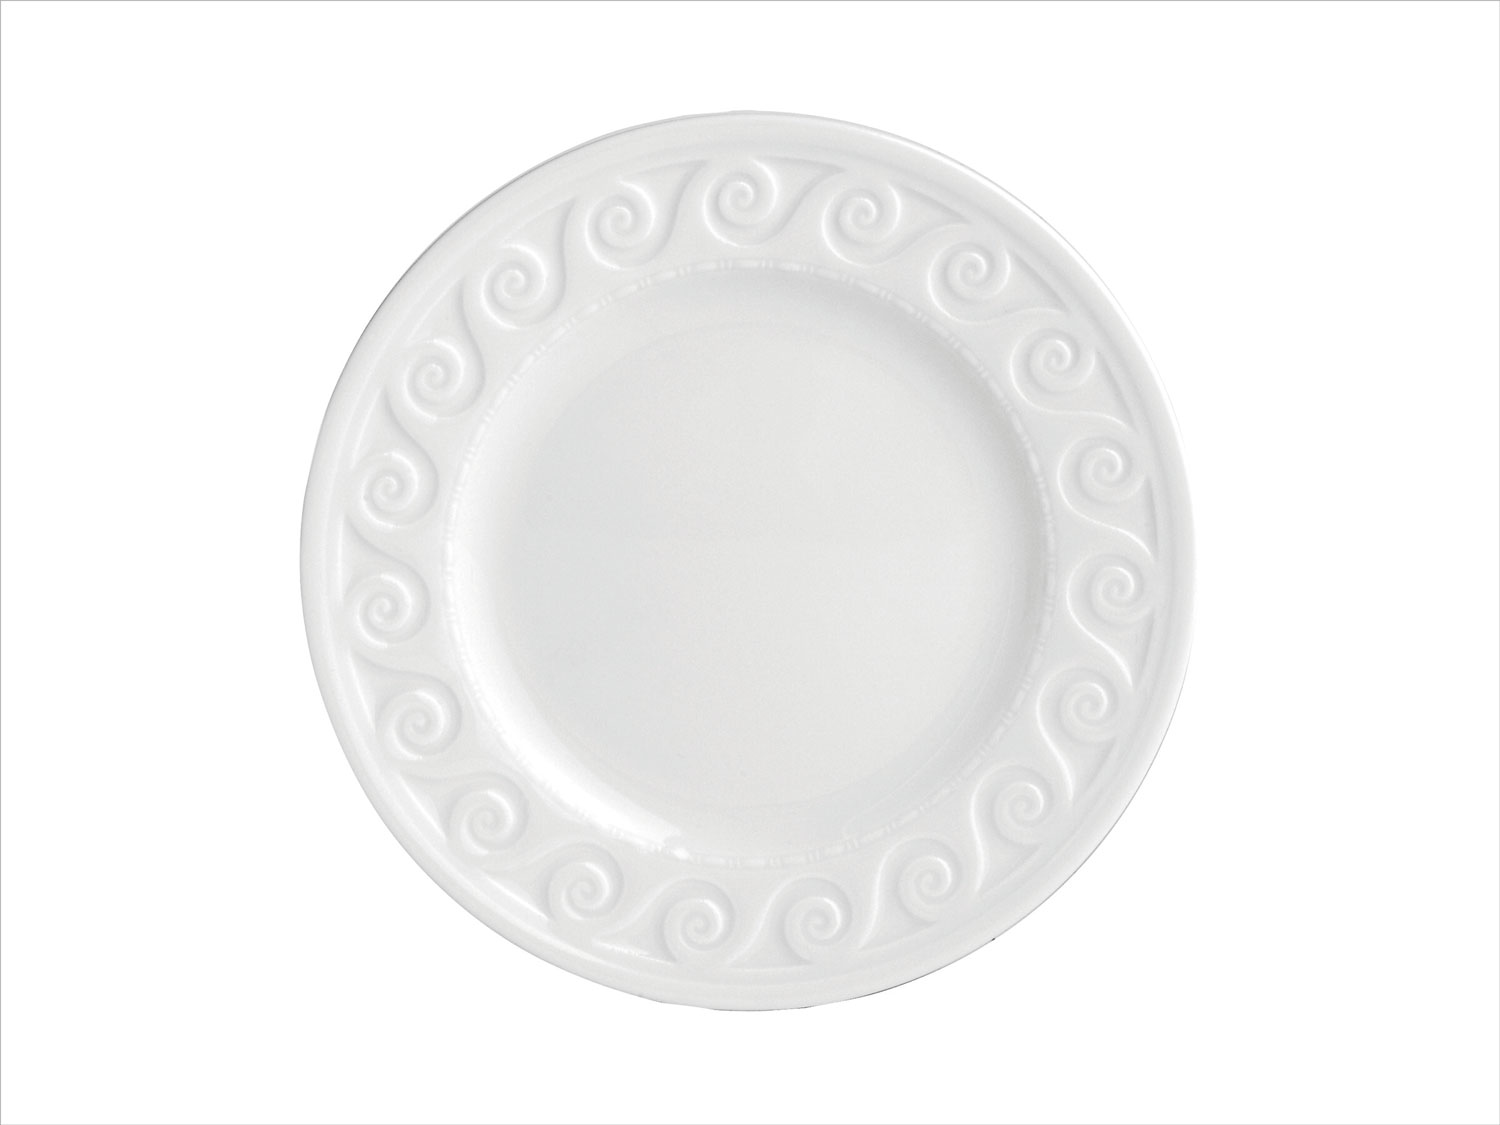 wedding registry product ideas china Bernardaud Louvre dinner plates bread butter